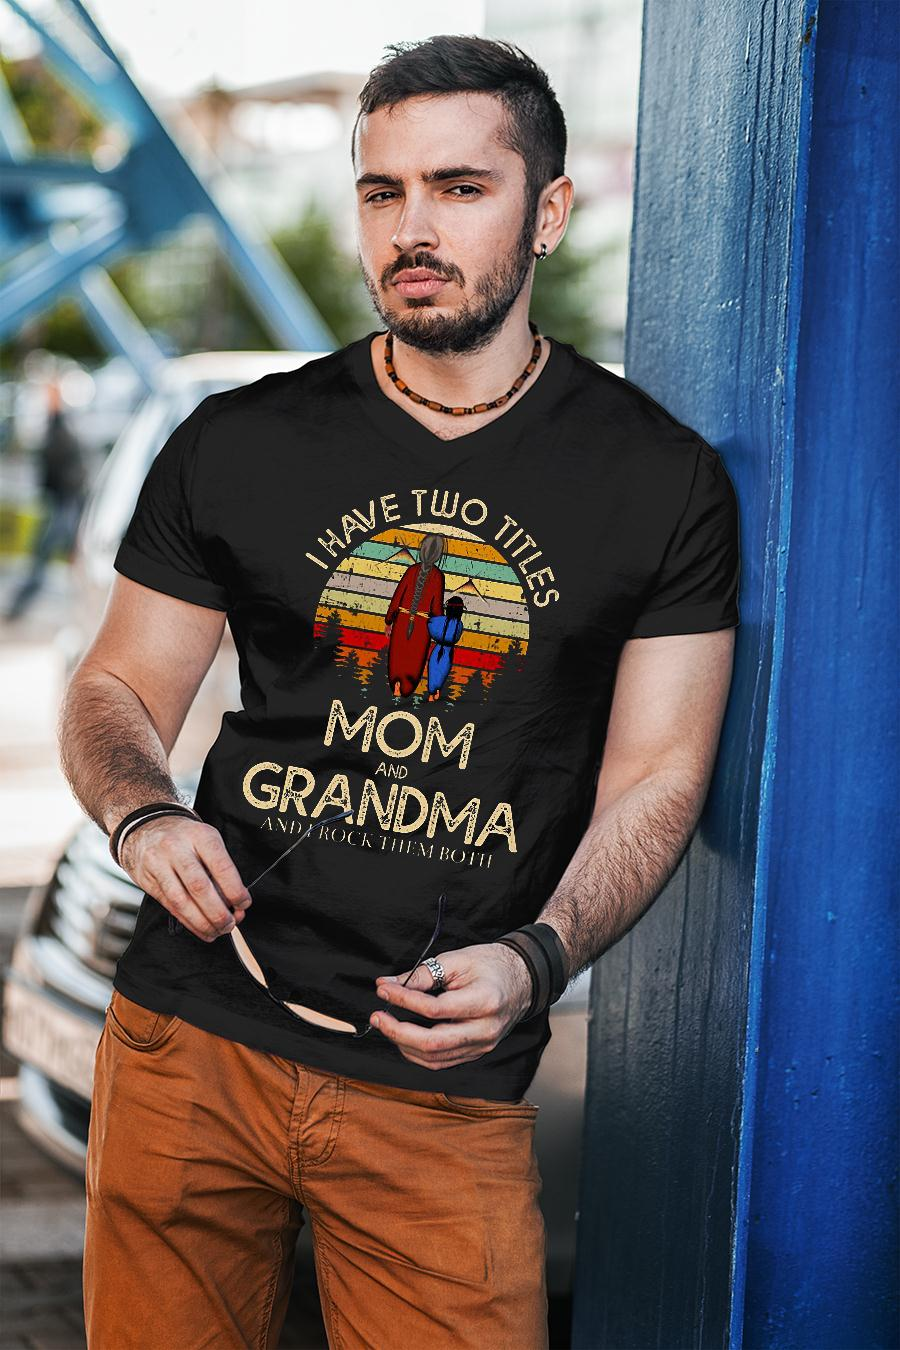 I have two titles mom and grandma and I rock them both shirt unisex